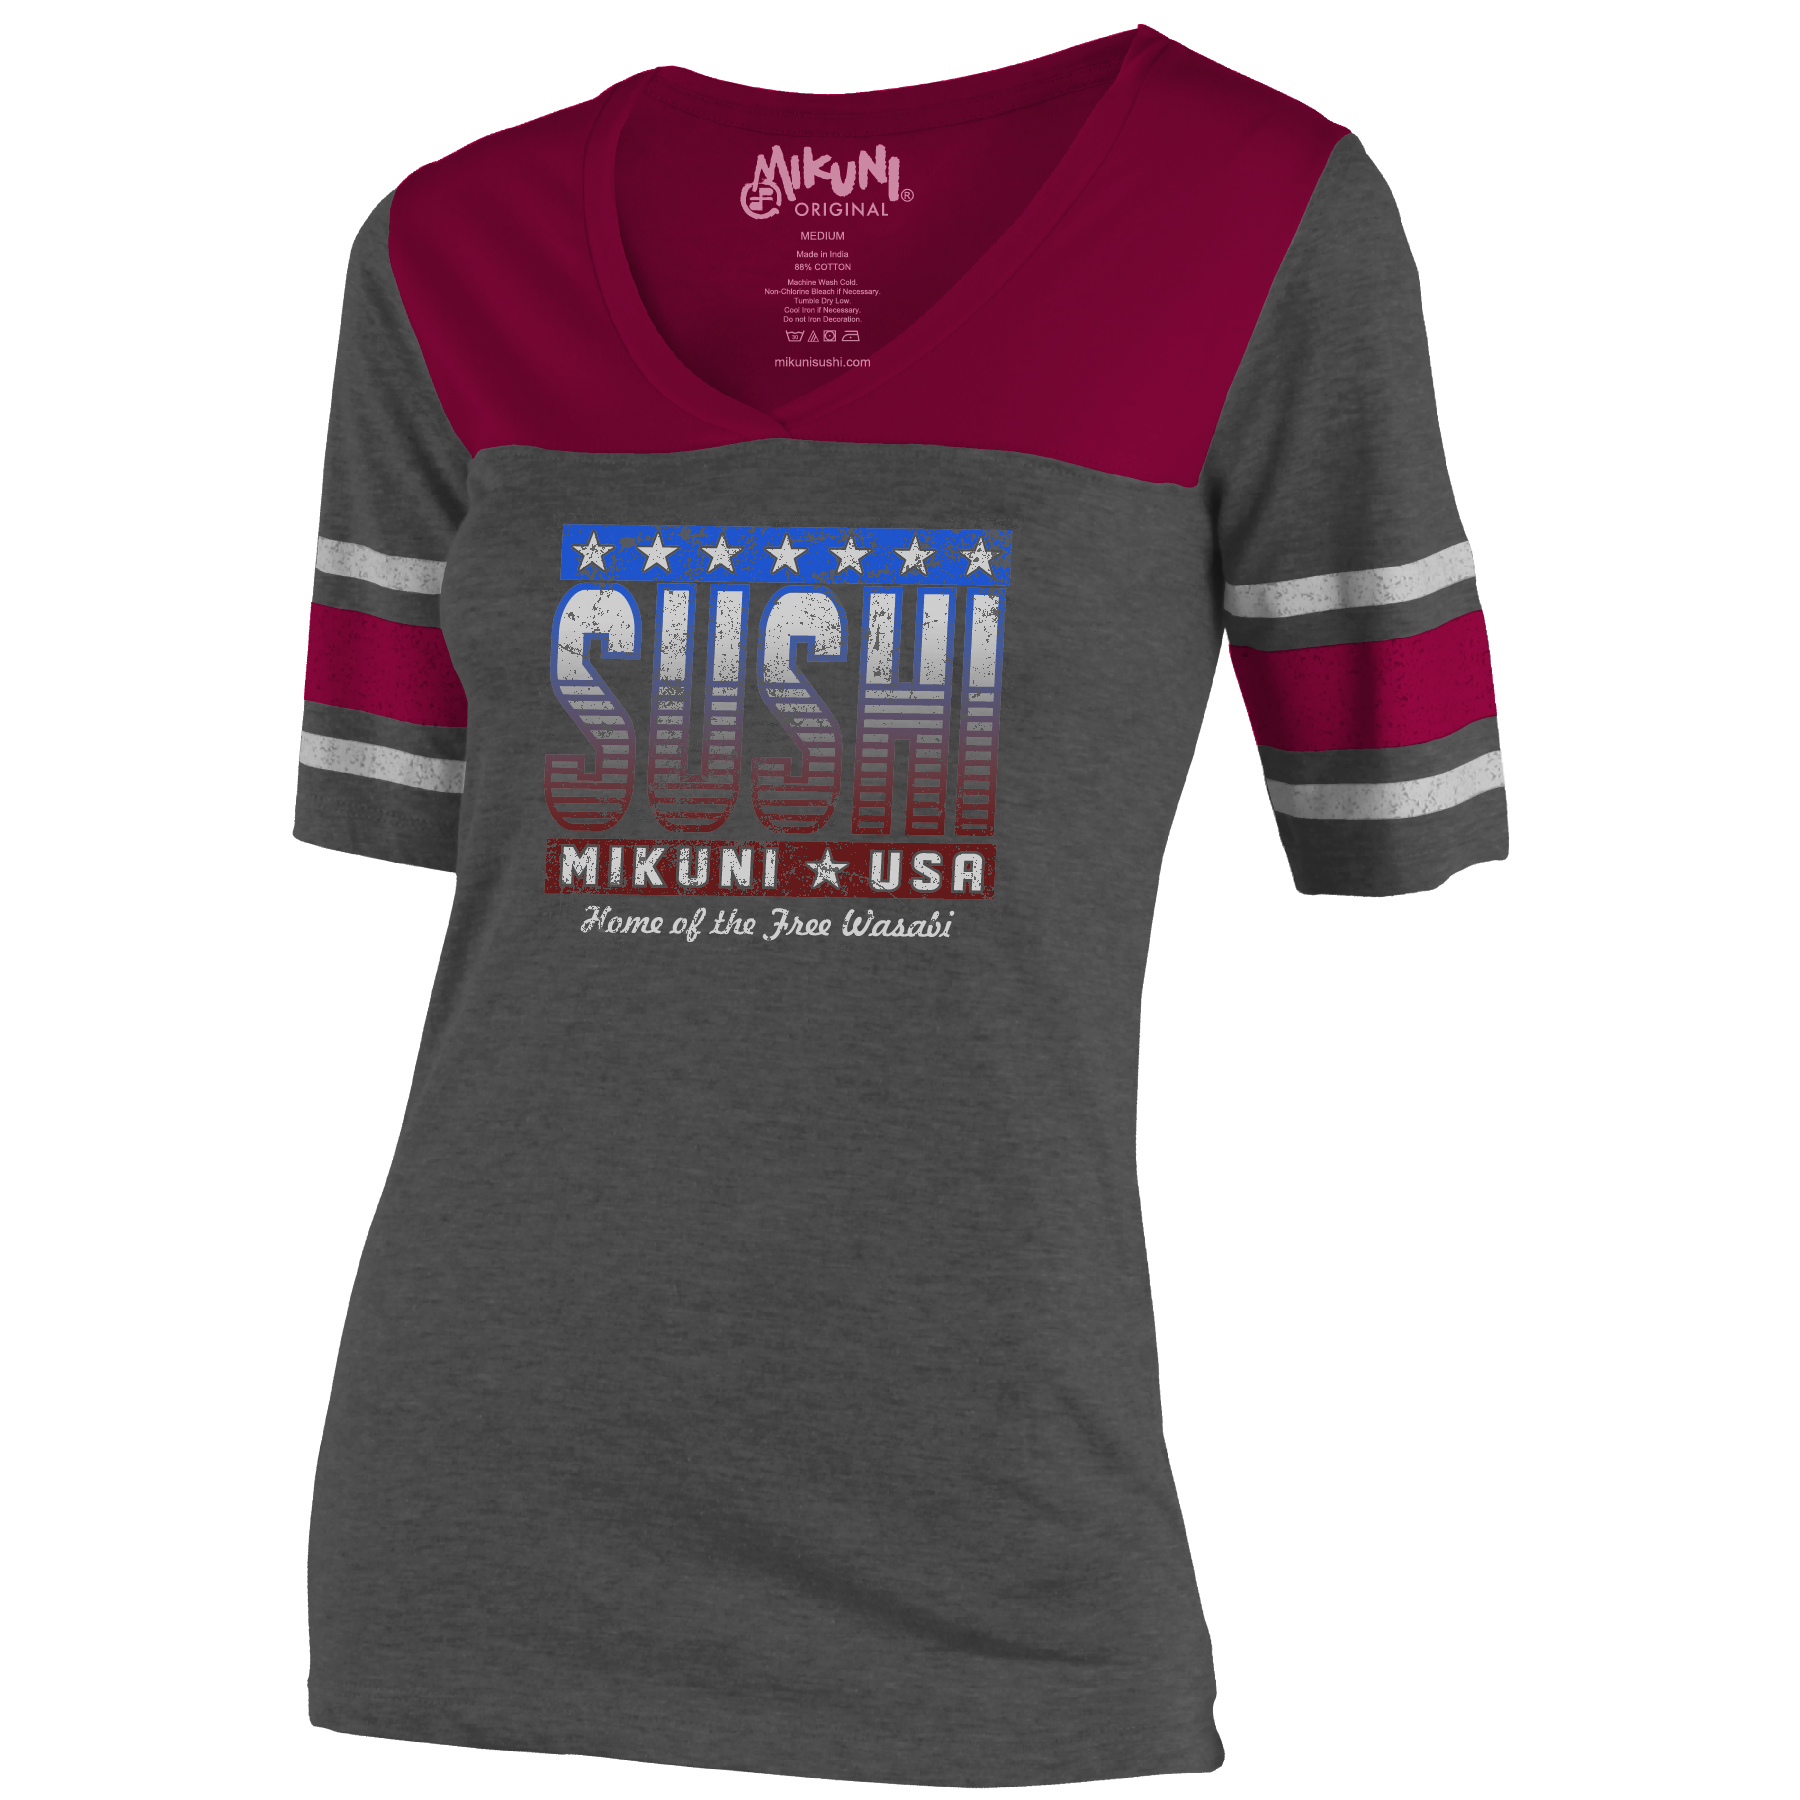 1201f262c273 Mikuni Online Store | T-Shirts, Hats, Gifts, and more!